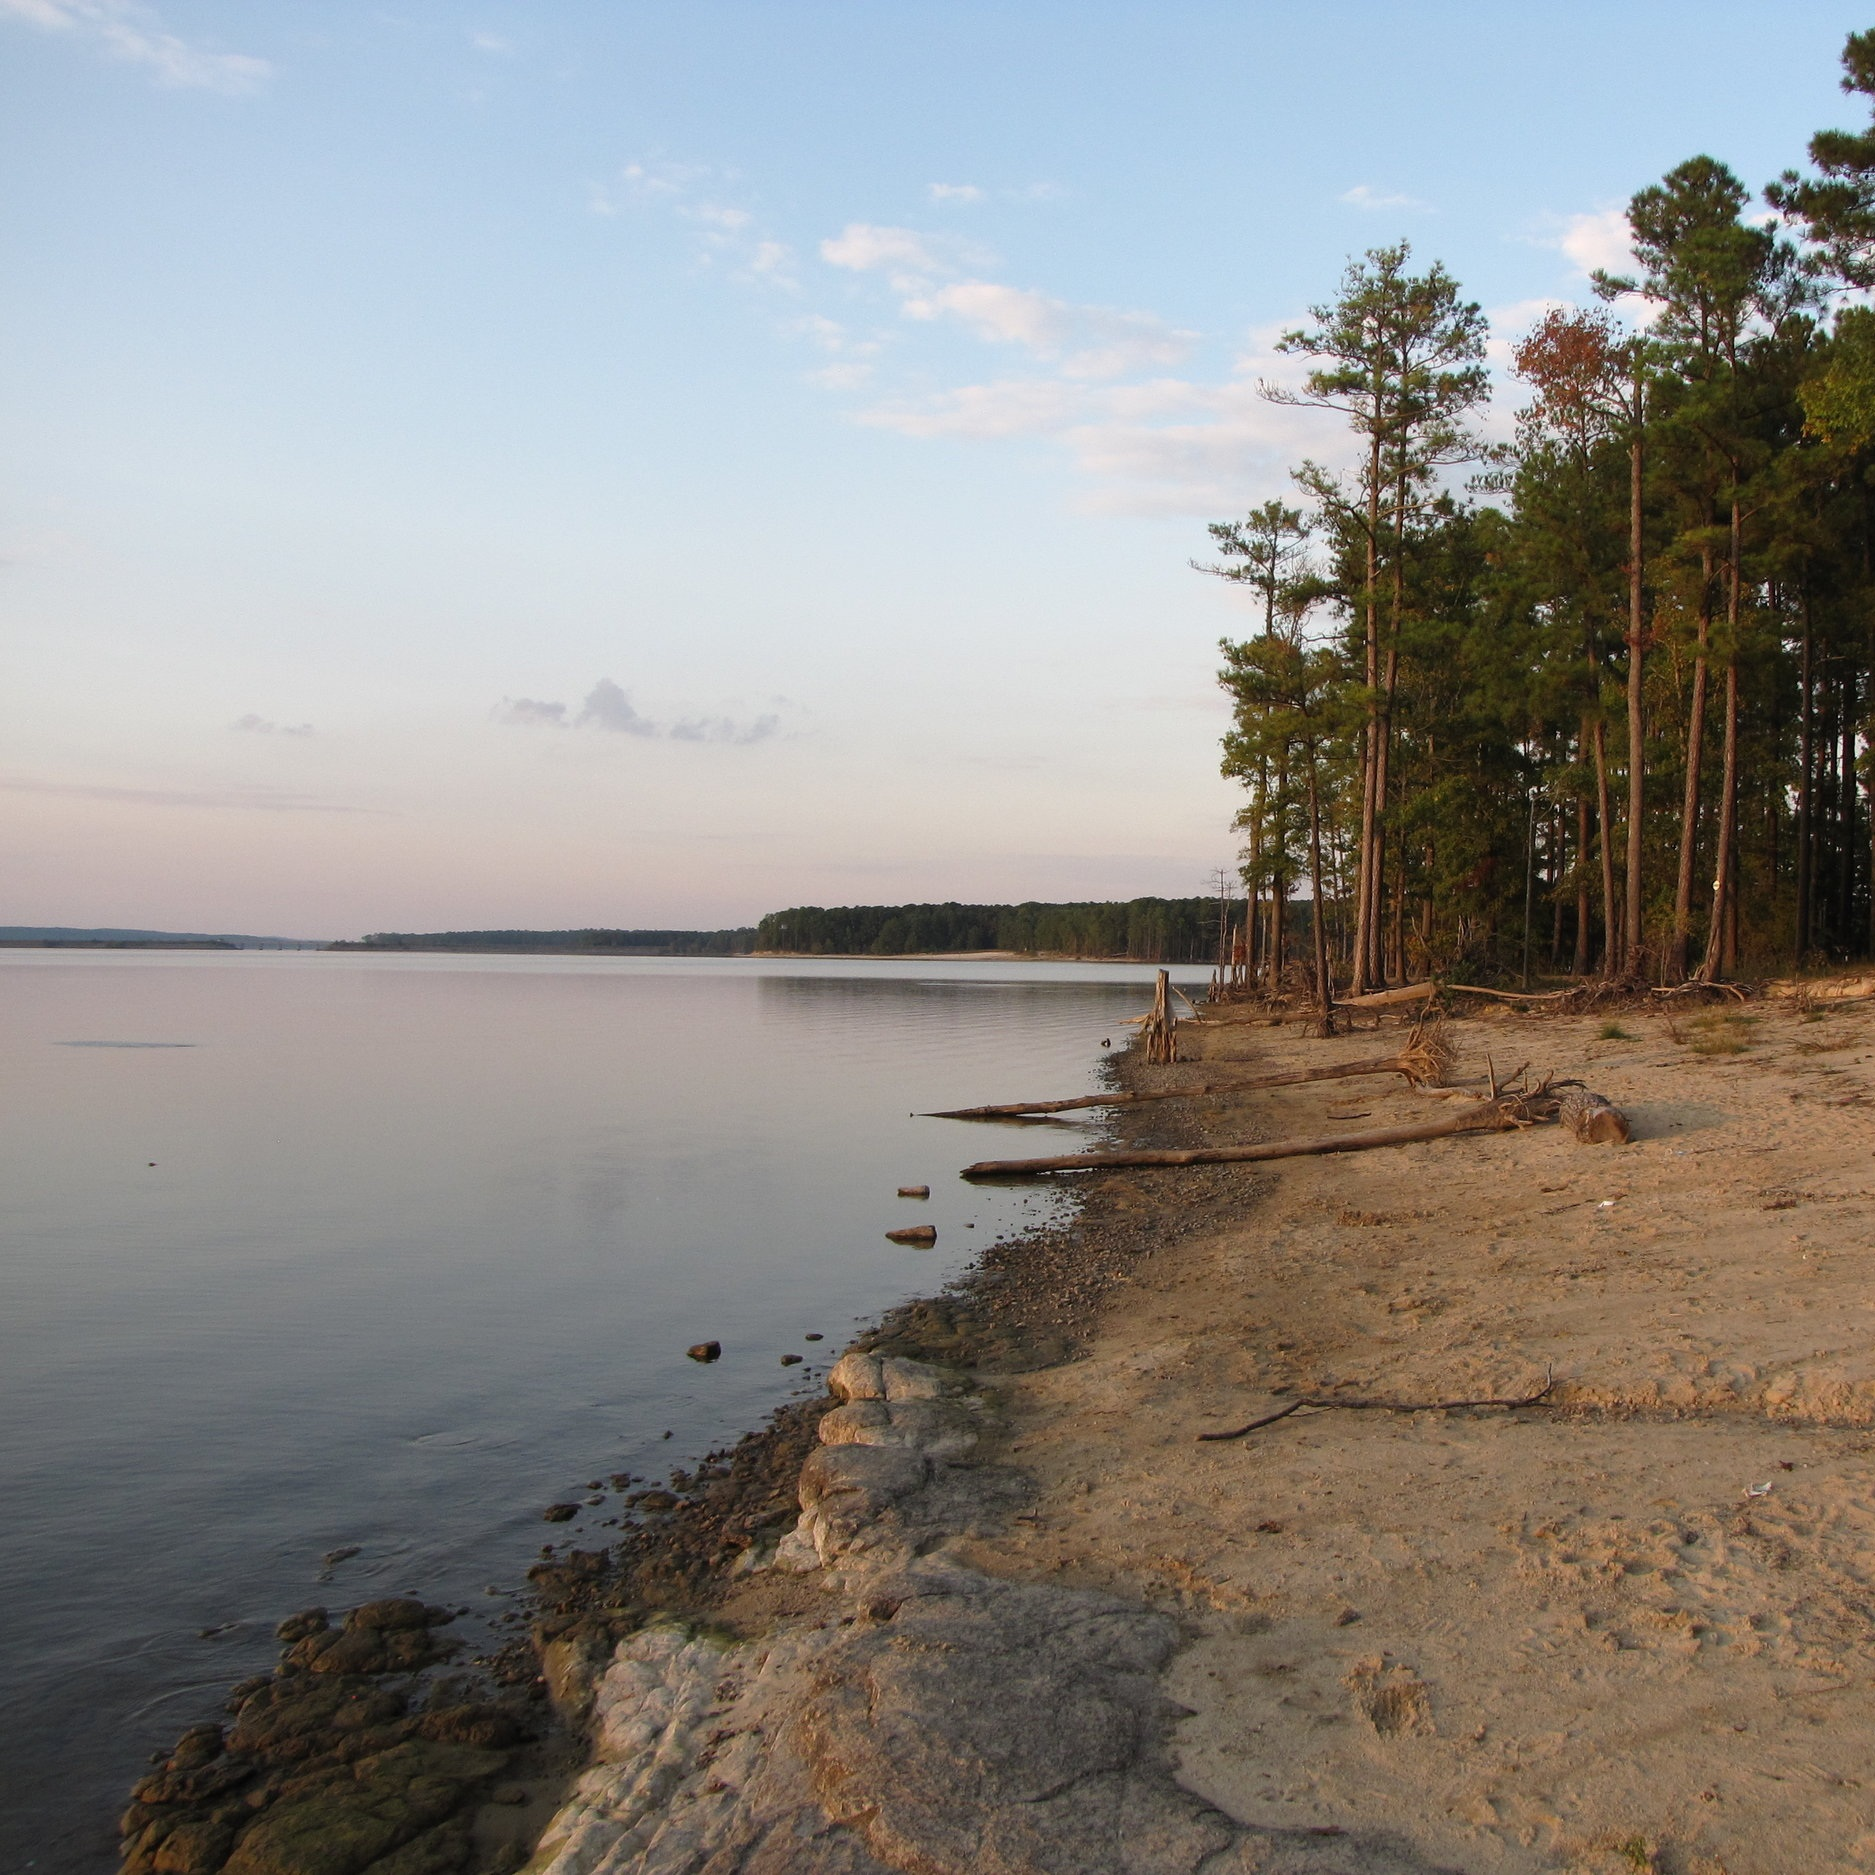 Jordan_Lake_from_Ebenezer_Church_shore.jpg